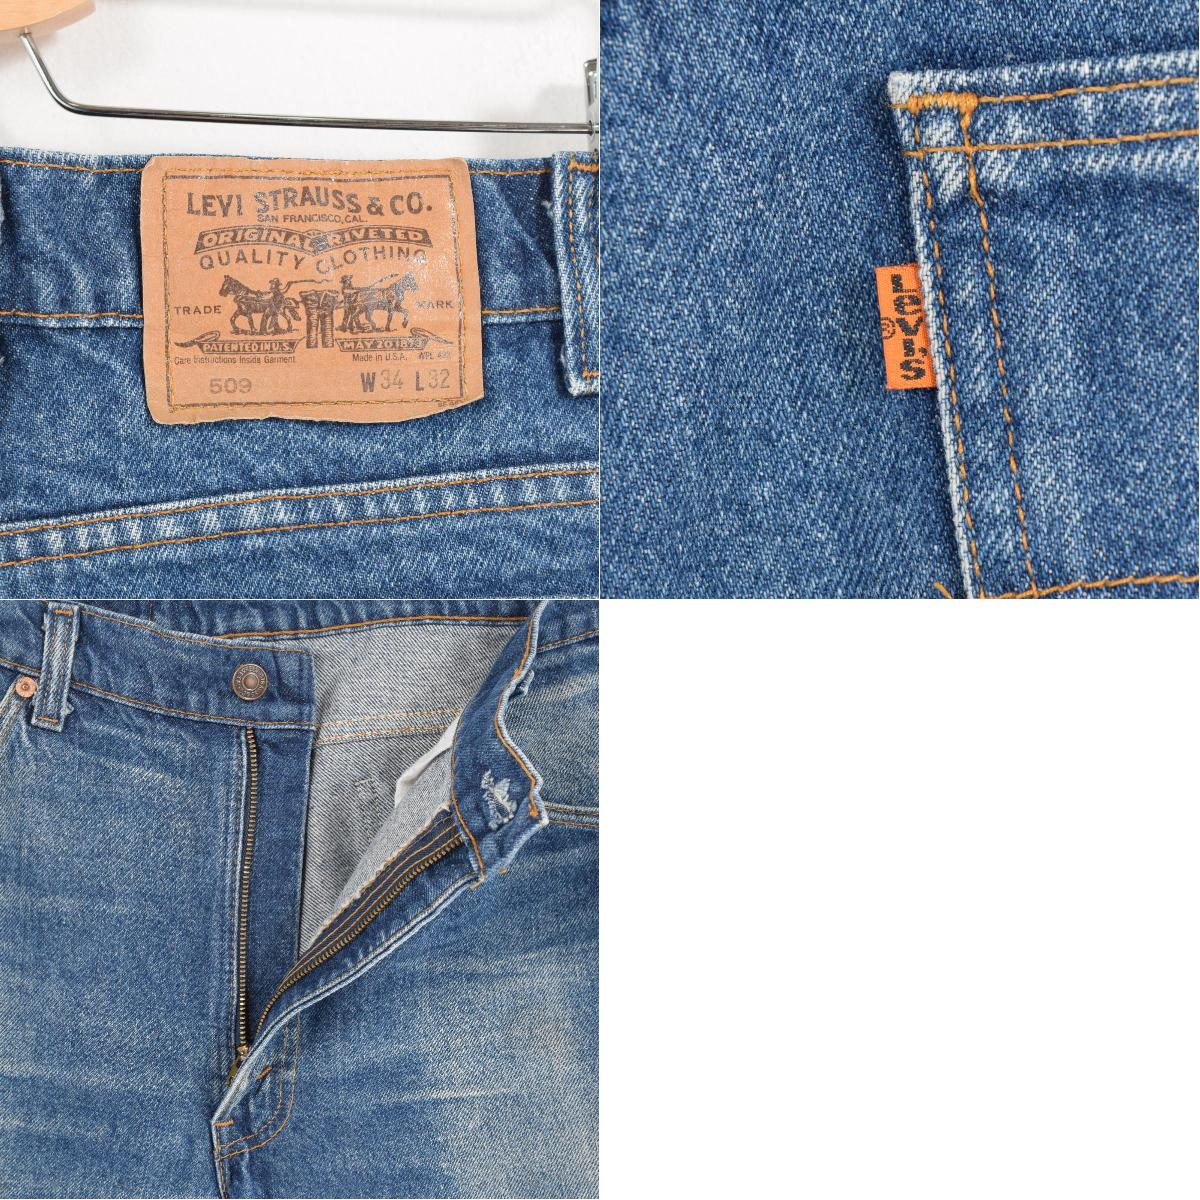 76da4153 ... Men w33 /wad1377 in the 90s made in Levis Levi's 509 orange tab jeans  straight